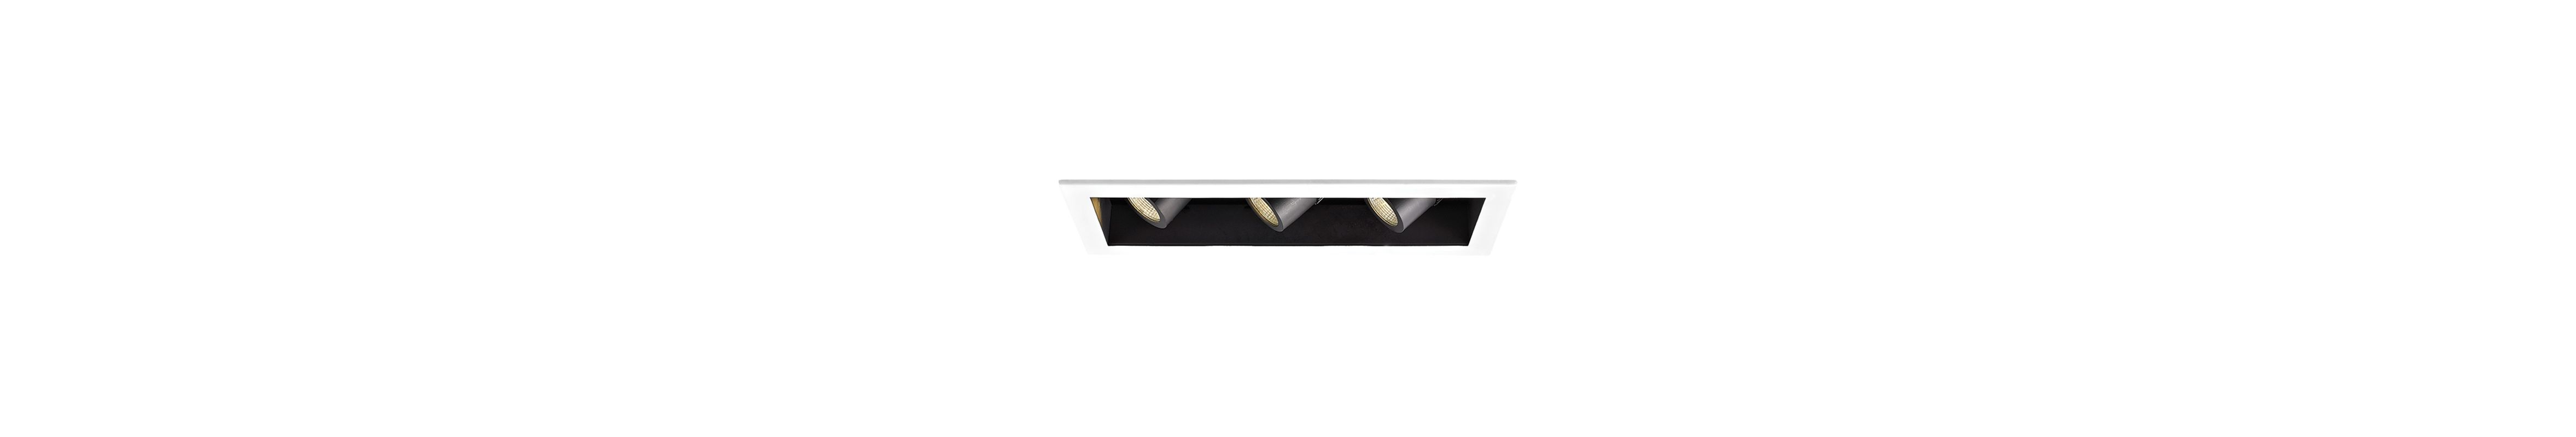 "WAC Lighting MT-4LD316N-S30 4"" Trim 3000K High Output LED Recessed"